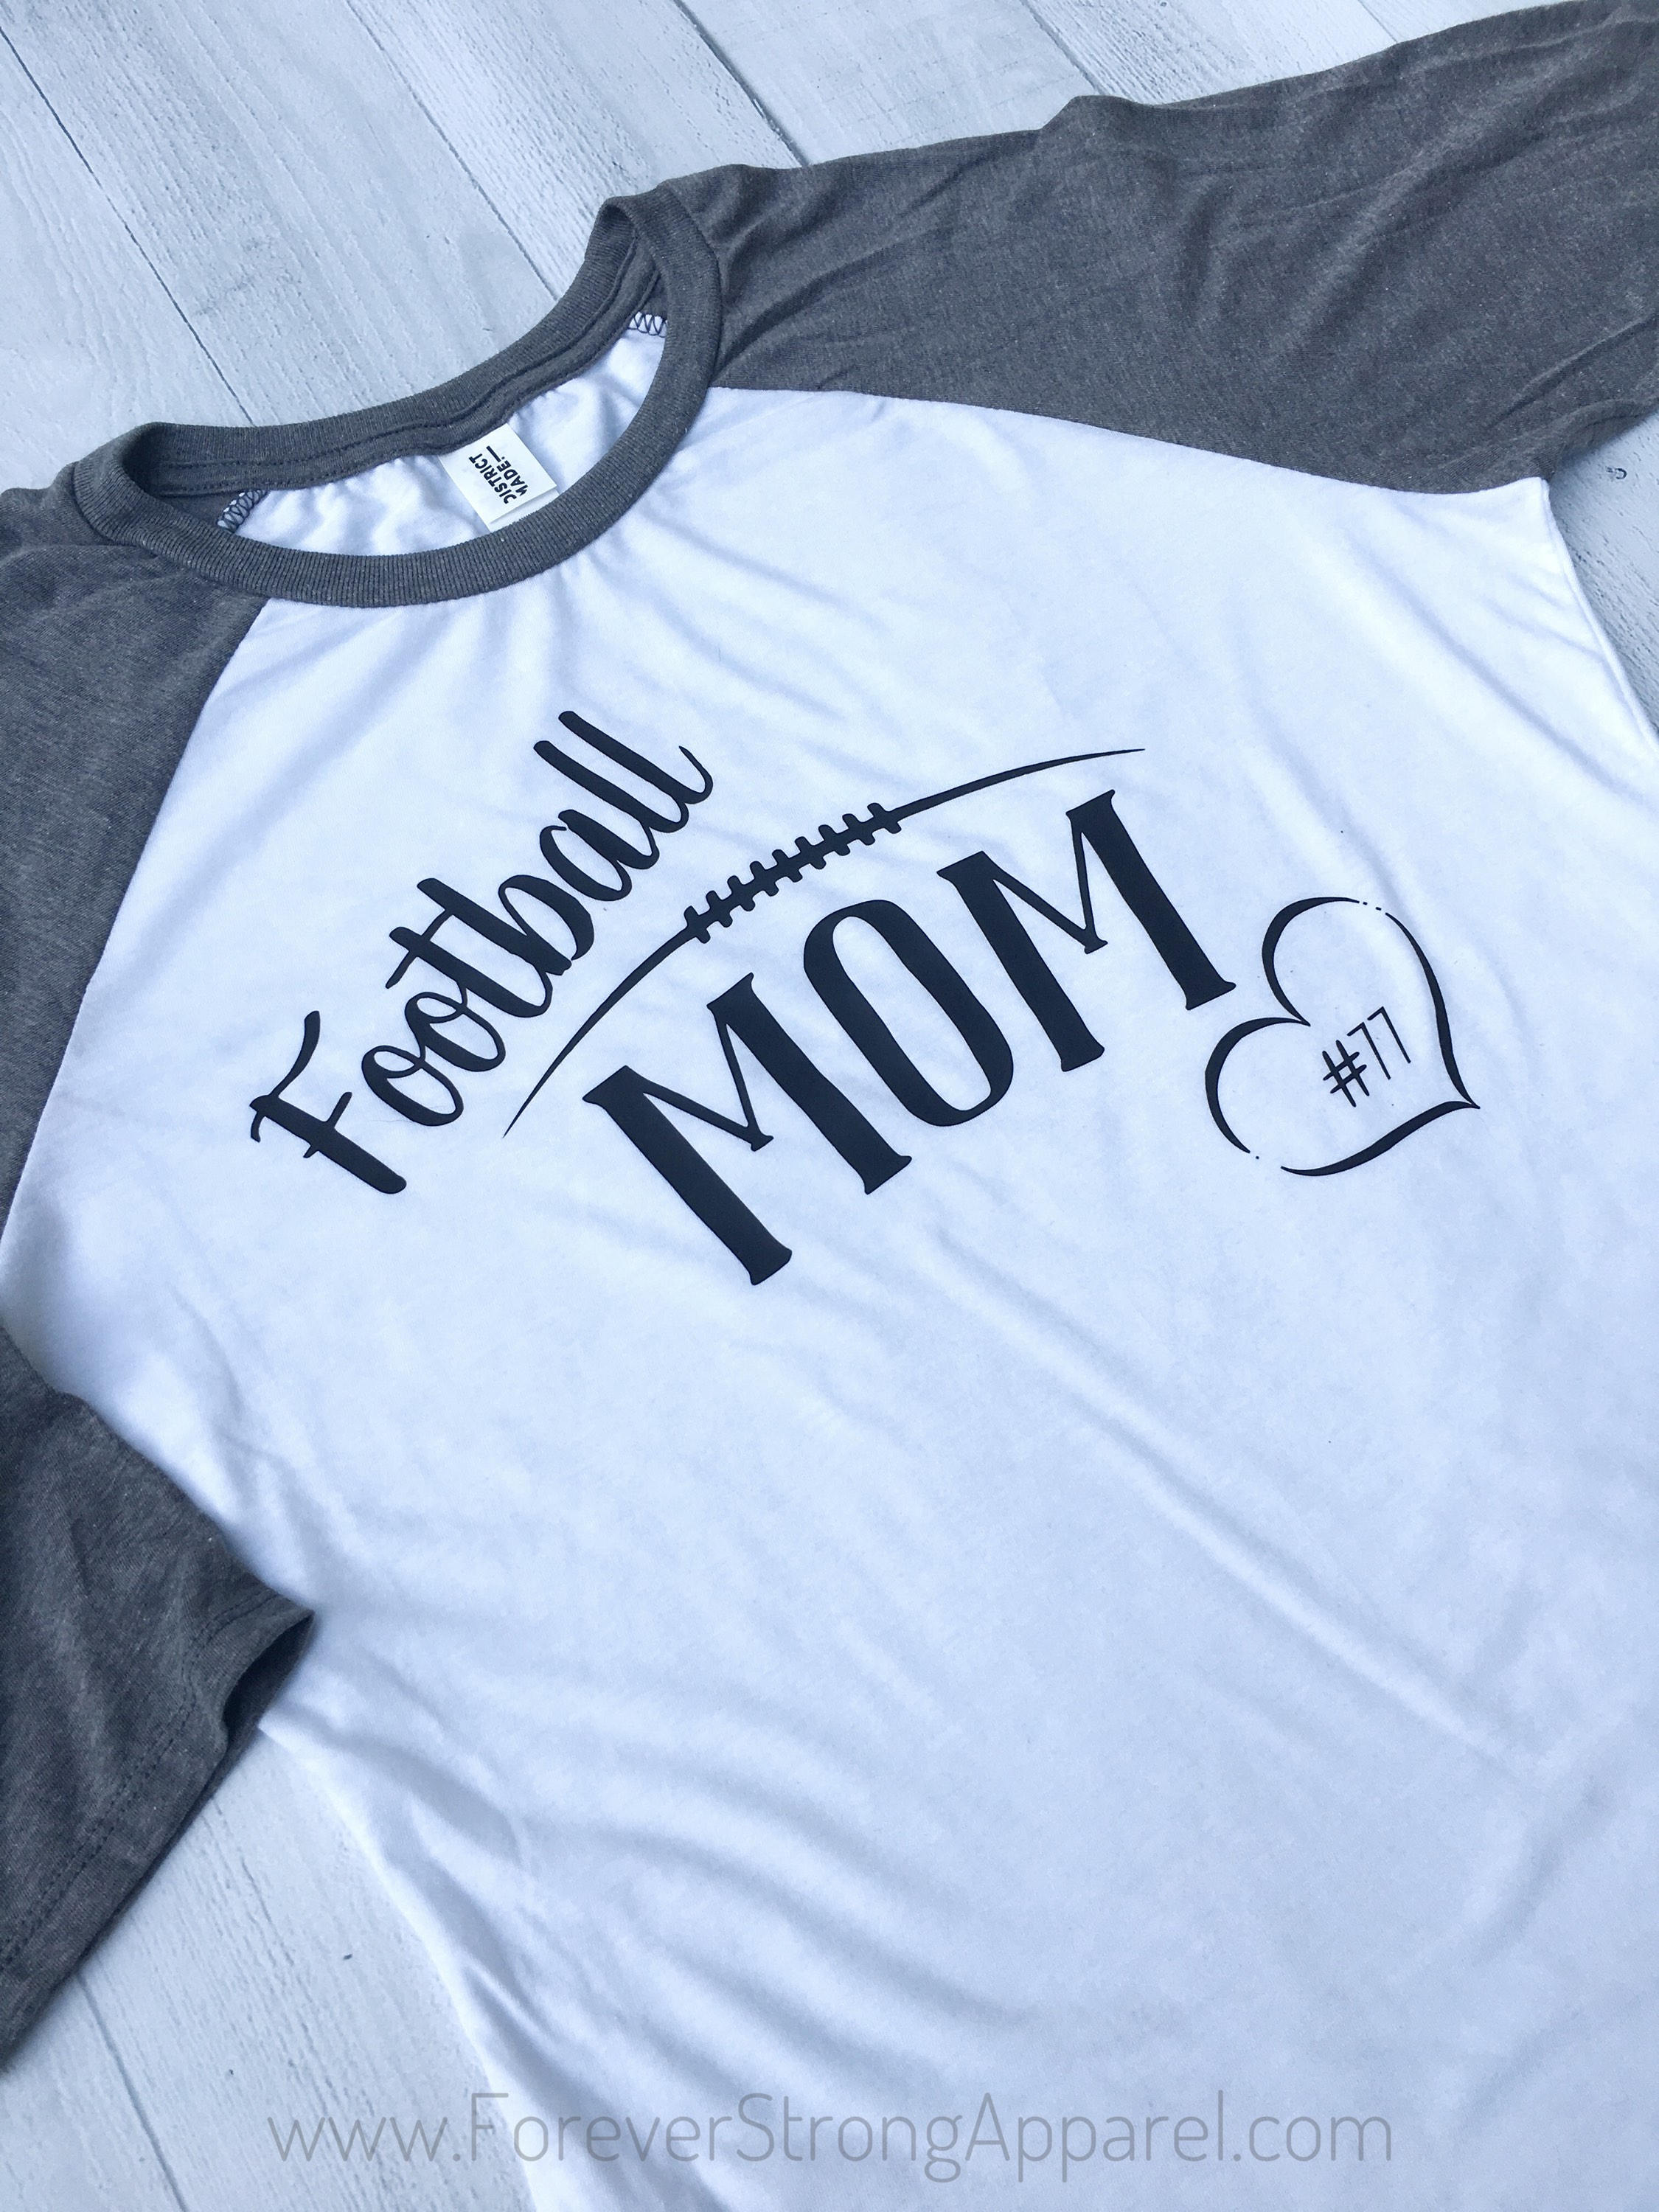 8d7083ece6b Plus Size Baseball Mom T Shirts - BCD Tofu House